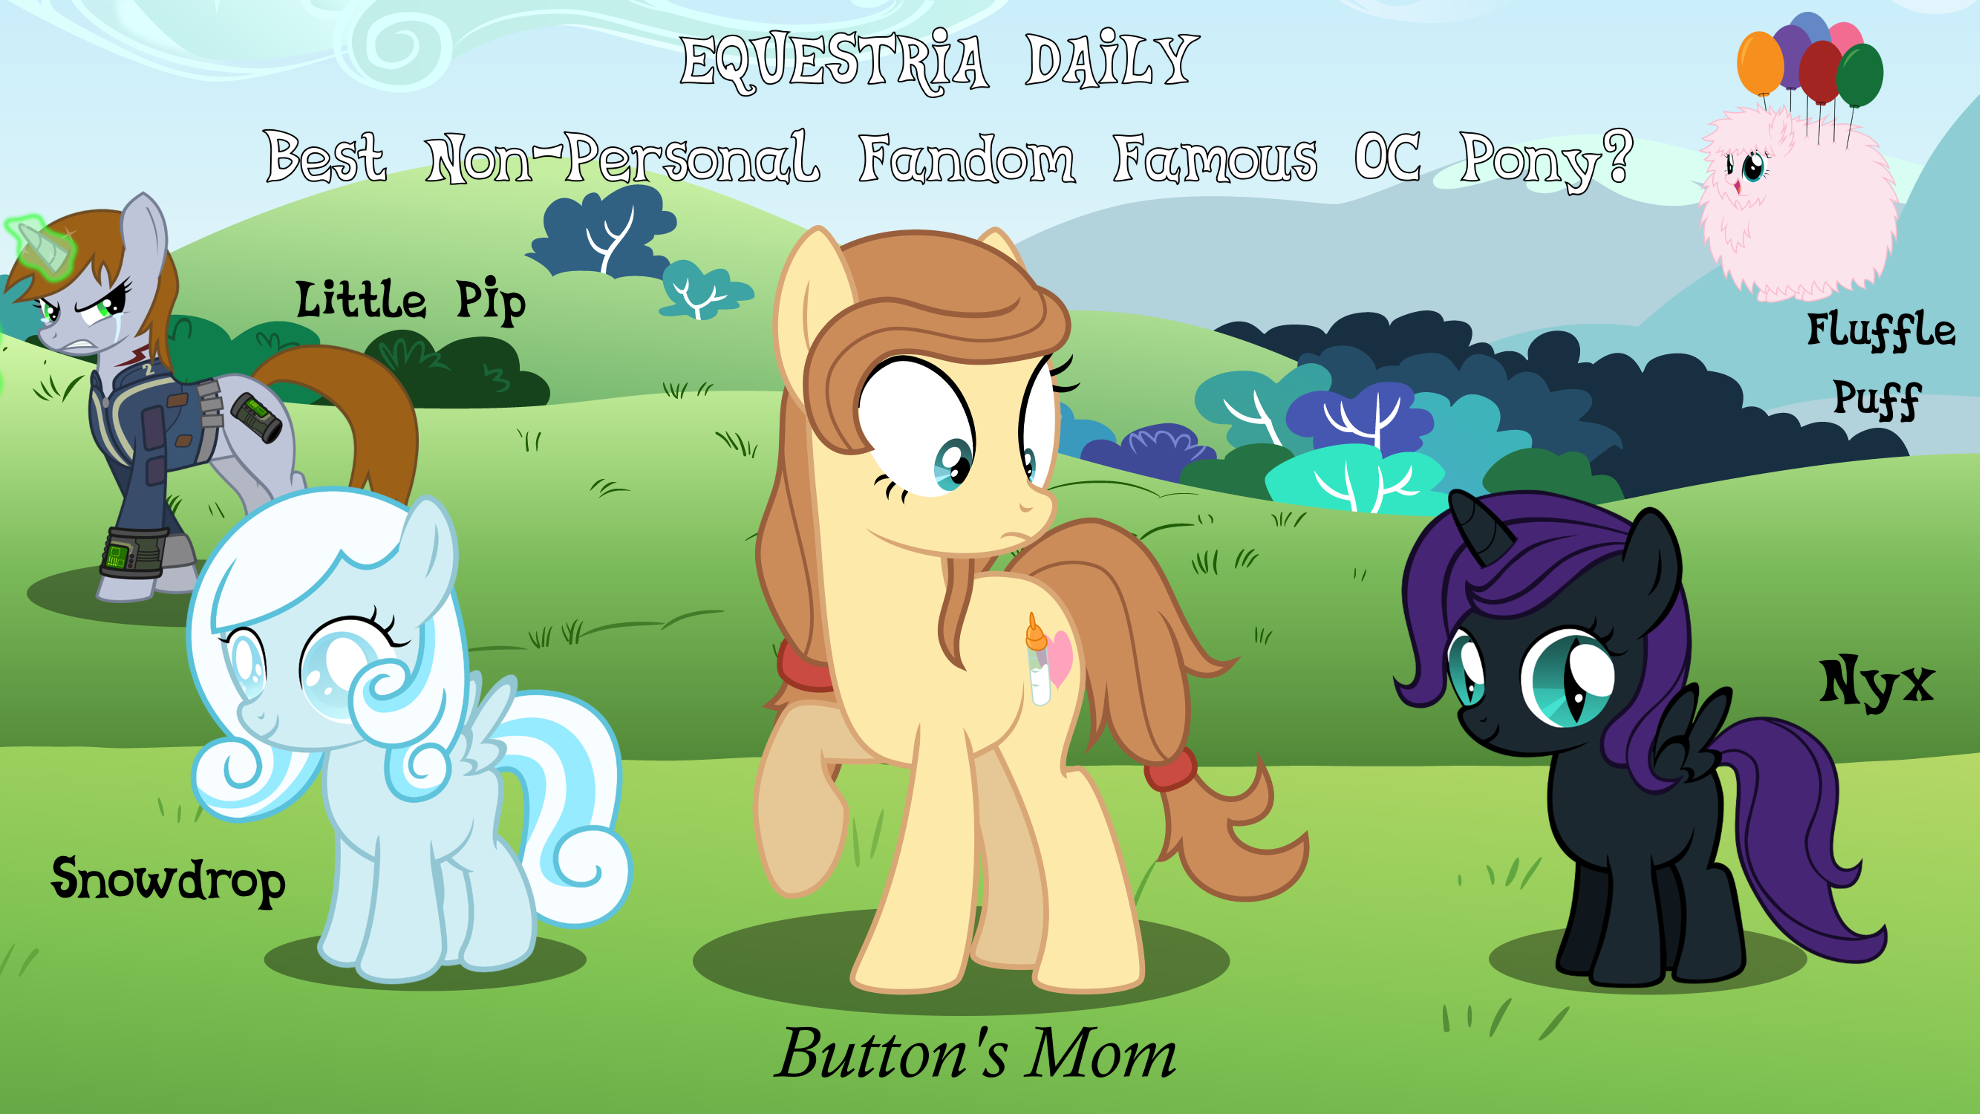 BUTTON'S MOM ALL THE WAY!!!